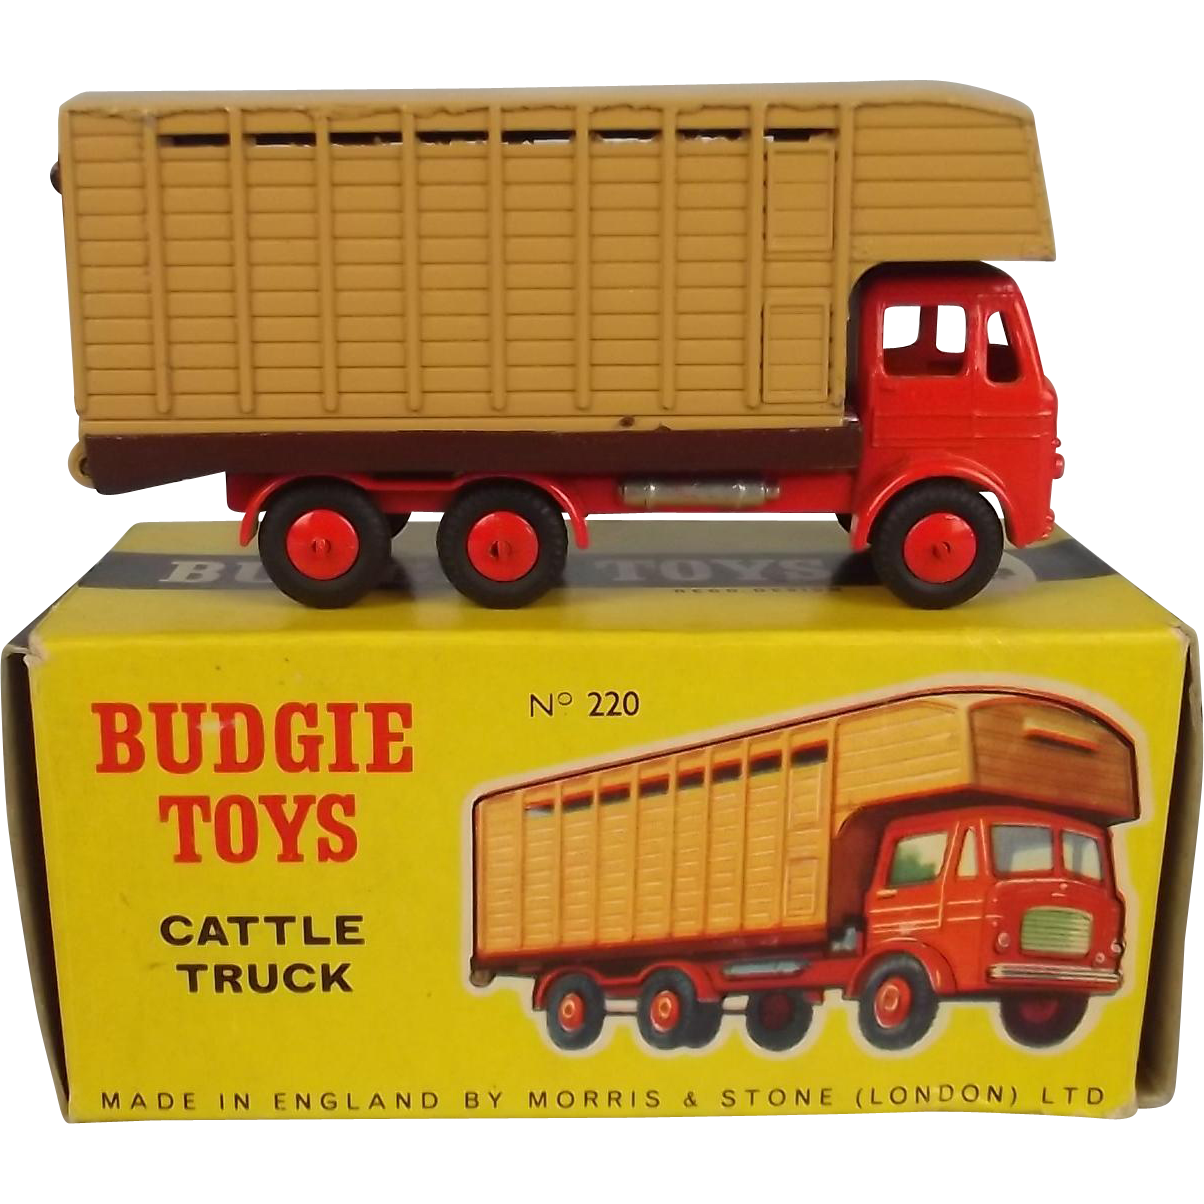 Boxed Budgie Toys No 220 Cattle Truck 1959 66 From